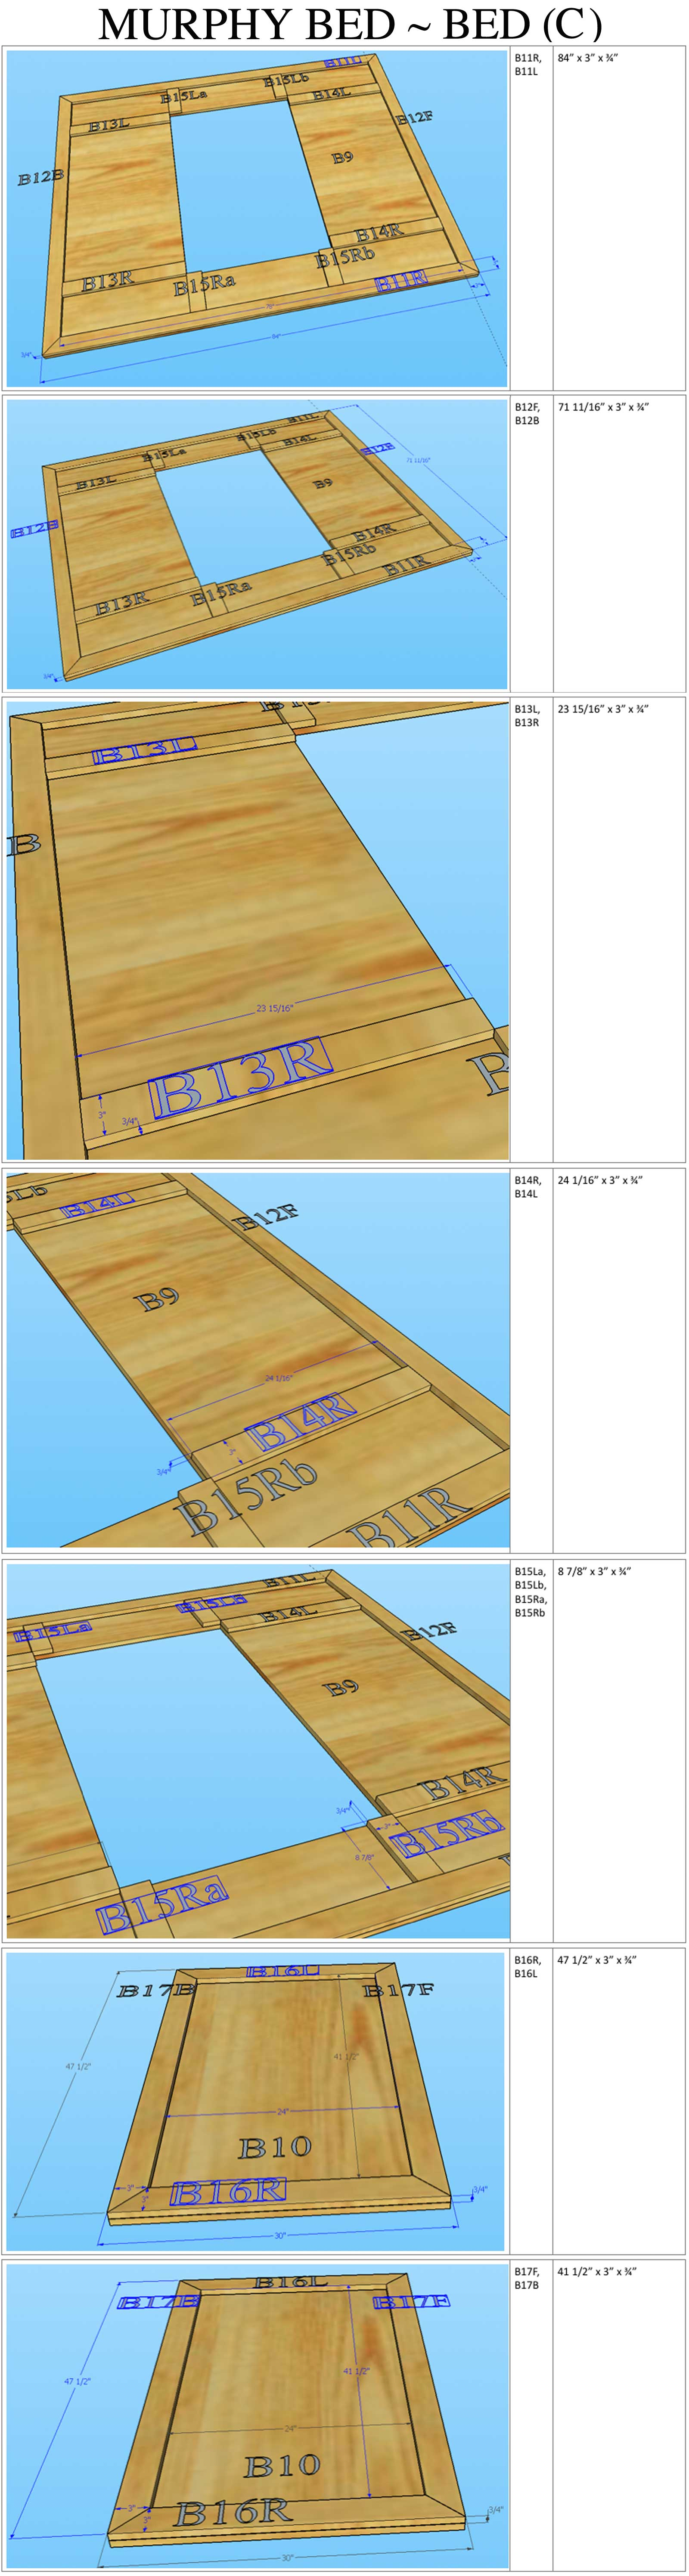 murphy bed assembly instructions